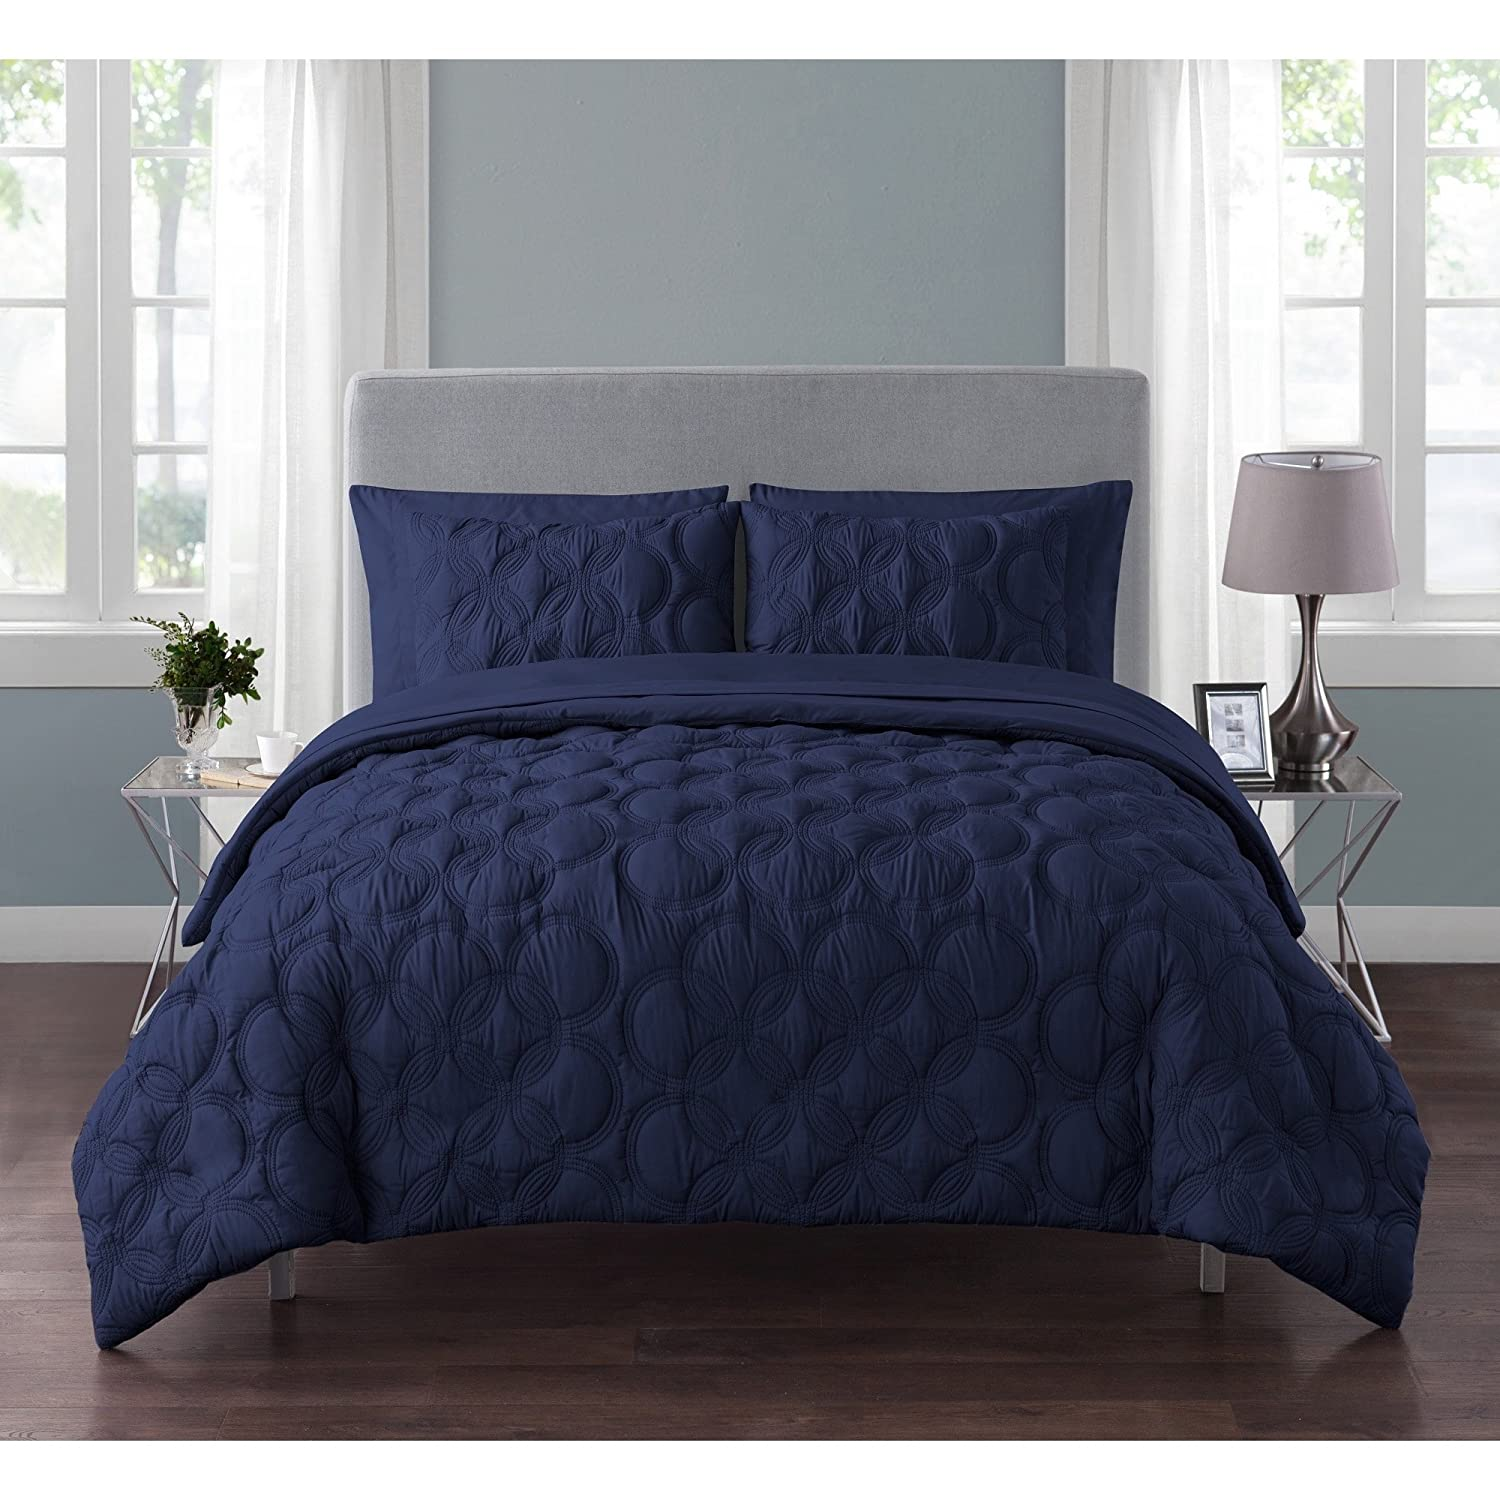 VCNY Home Atoll Embossed 7 Piece Bed-in-A-Bag Comforter Set King Navy